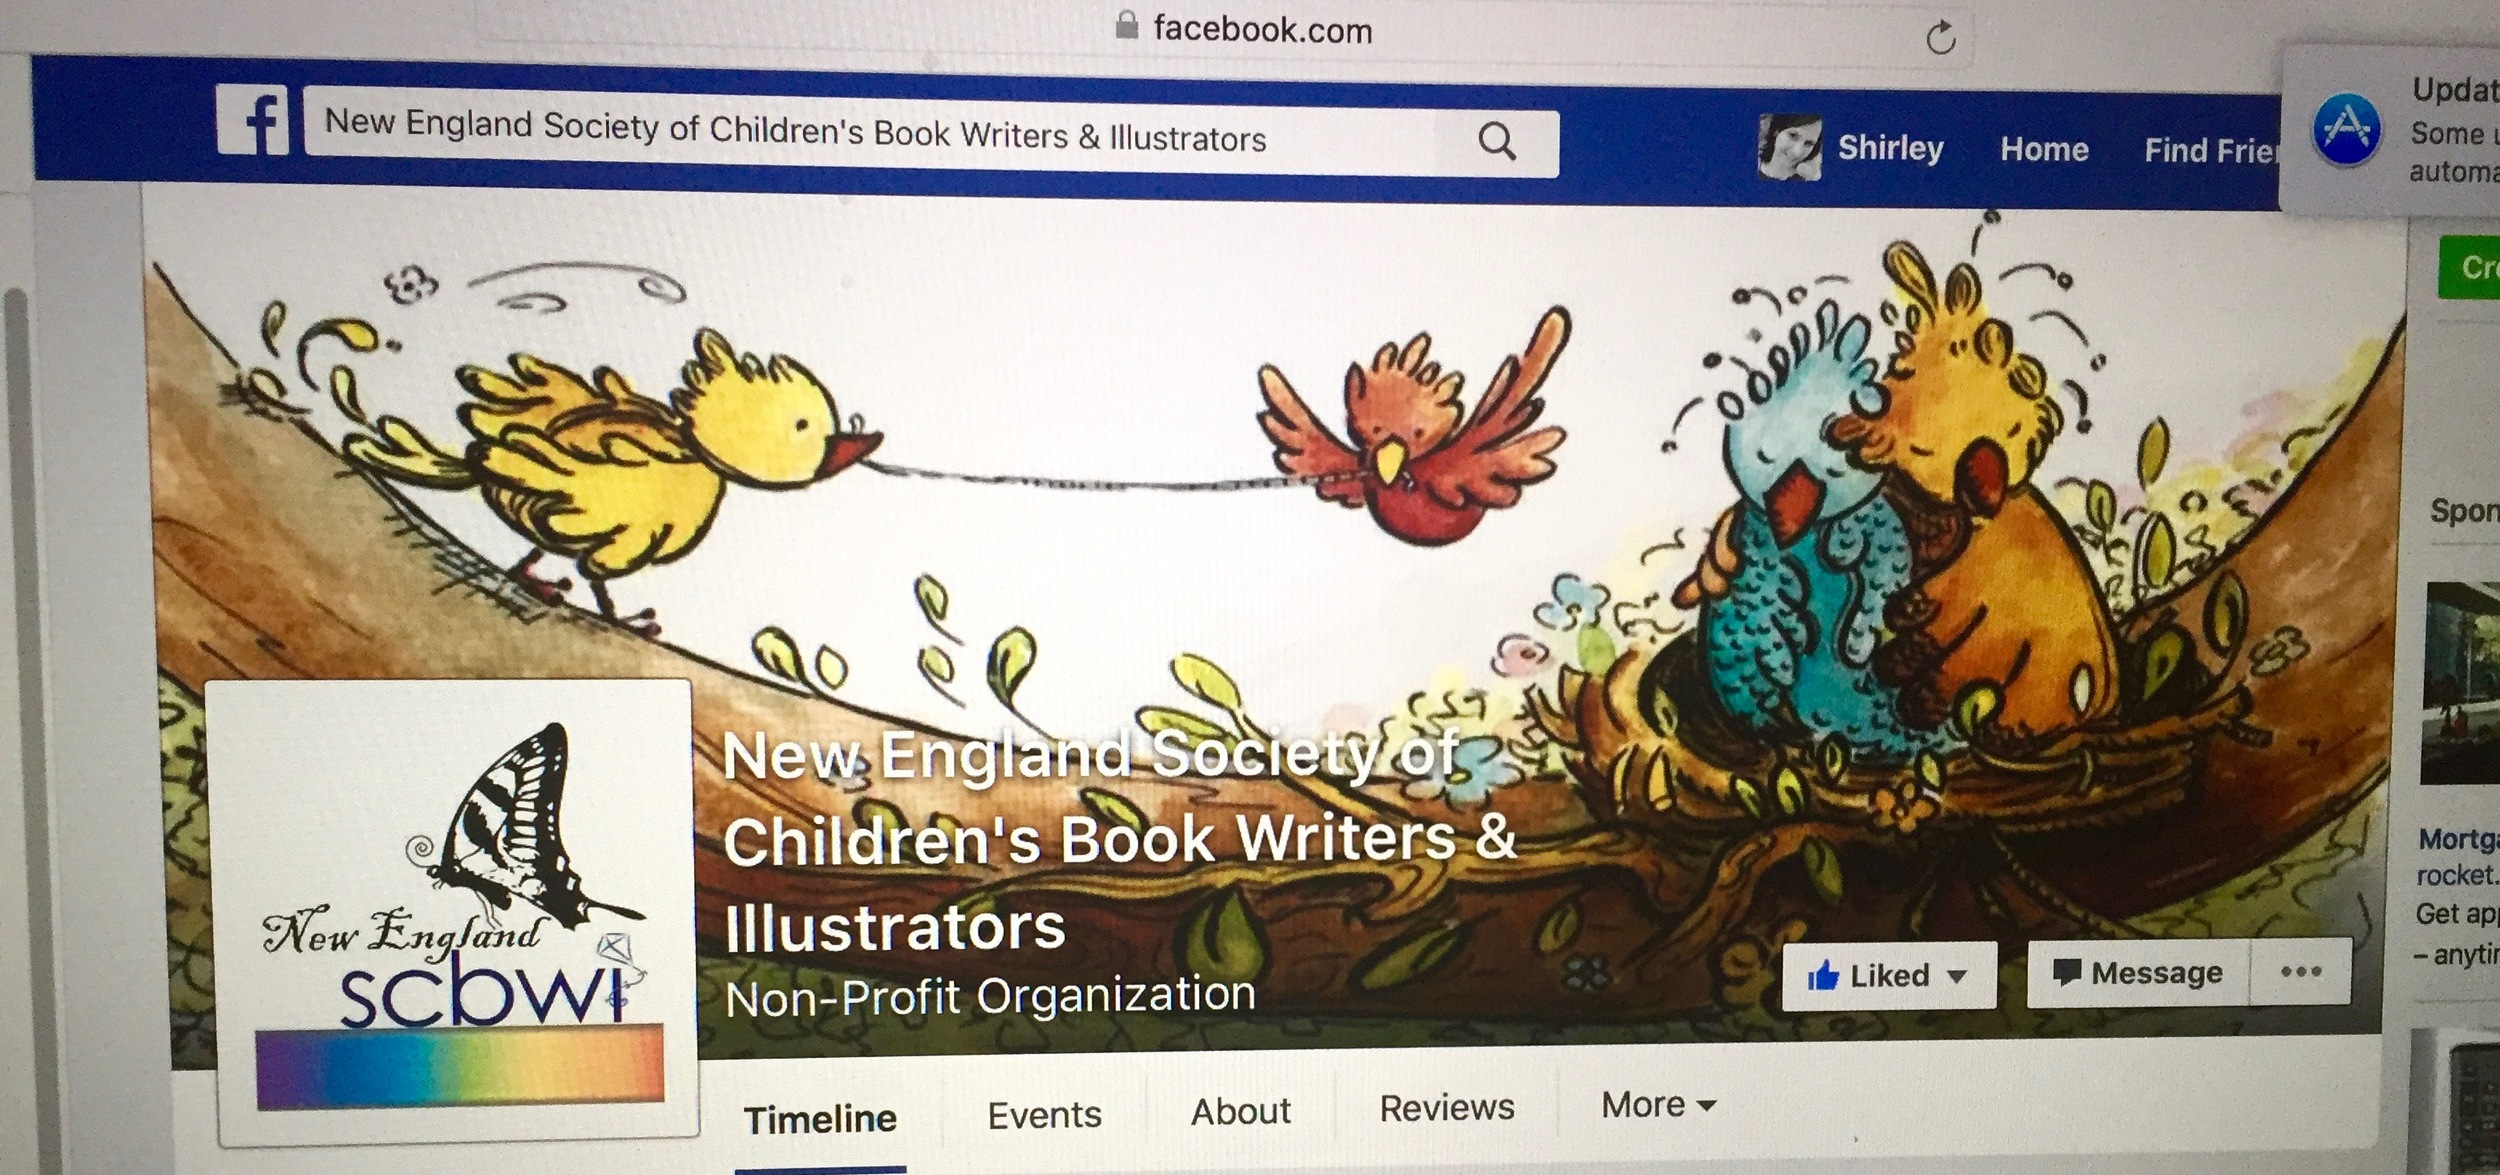 The final artwork on the NE SCBWI Facebook page.